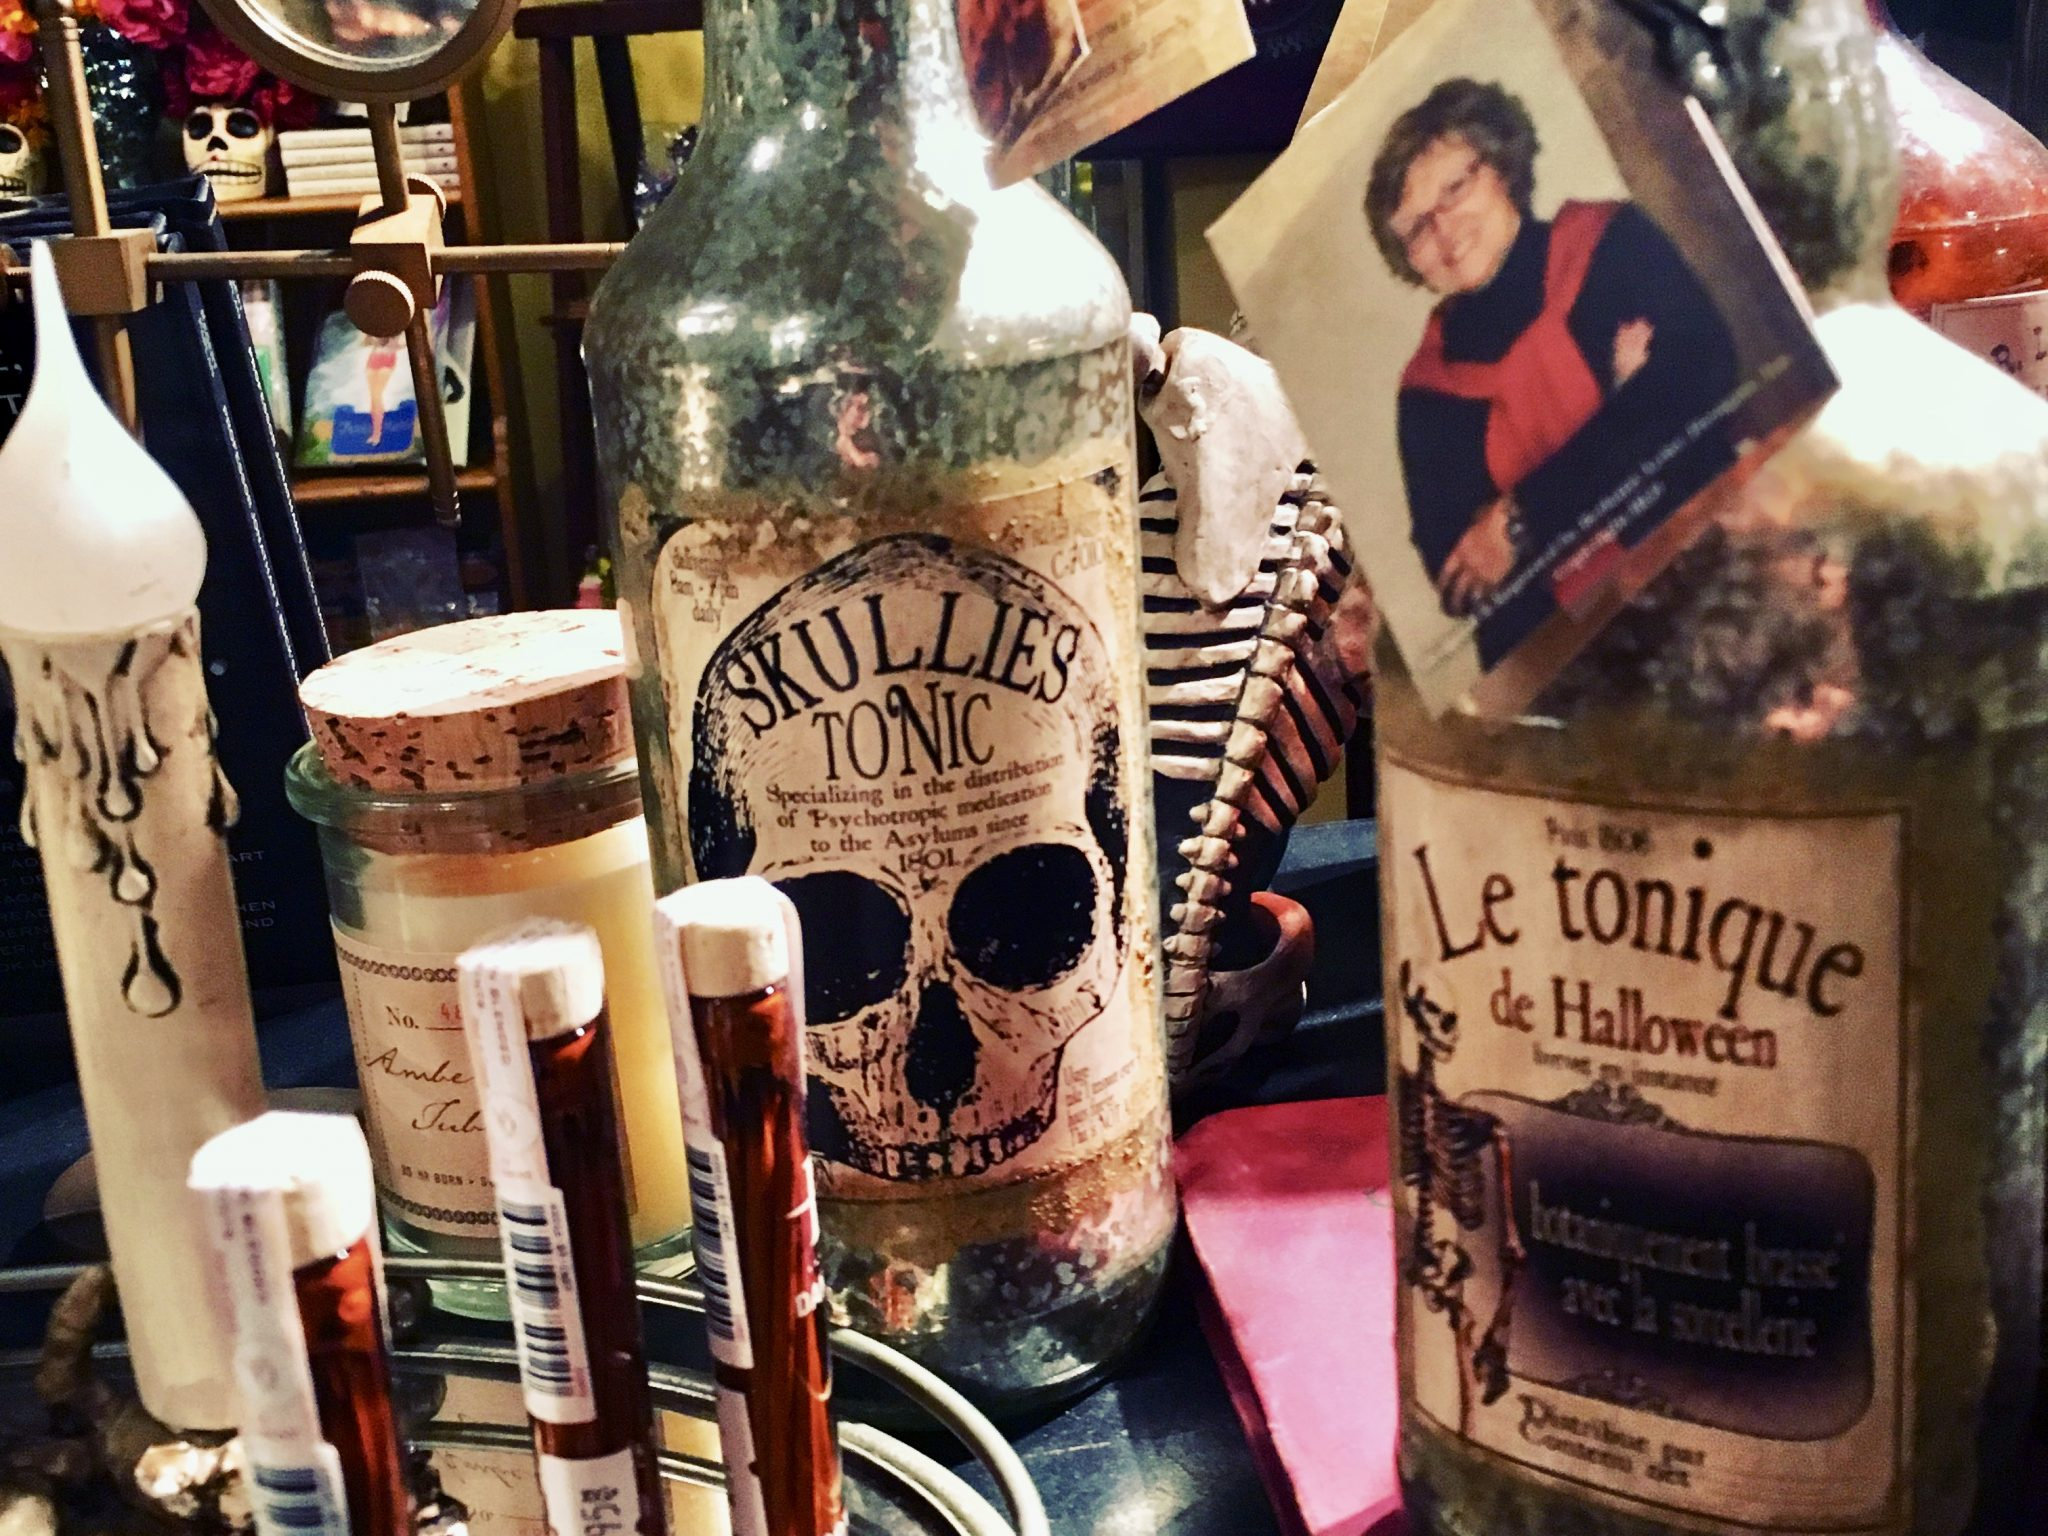 spooky items are for sale in the gift shop of the Haunted Whaley House in San Diego's Old Town